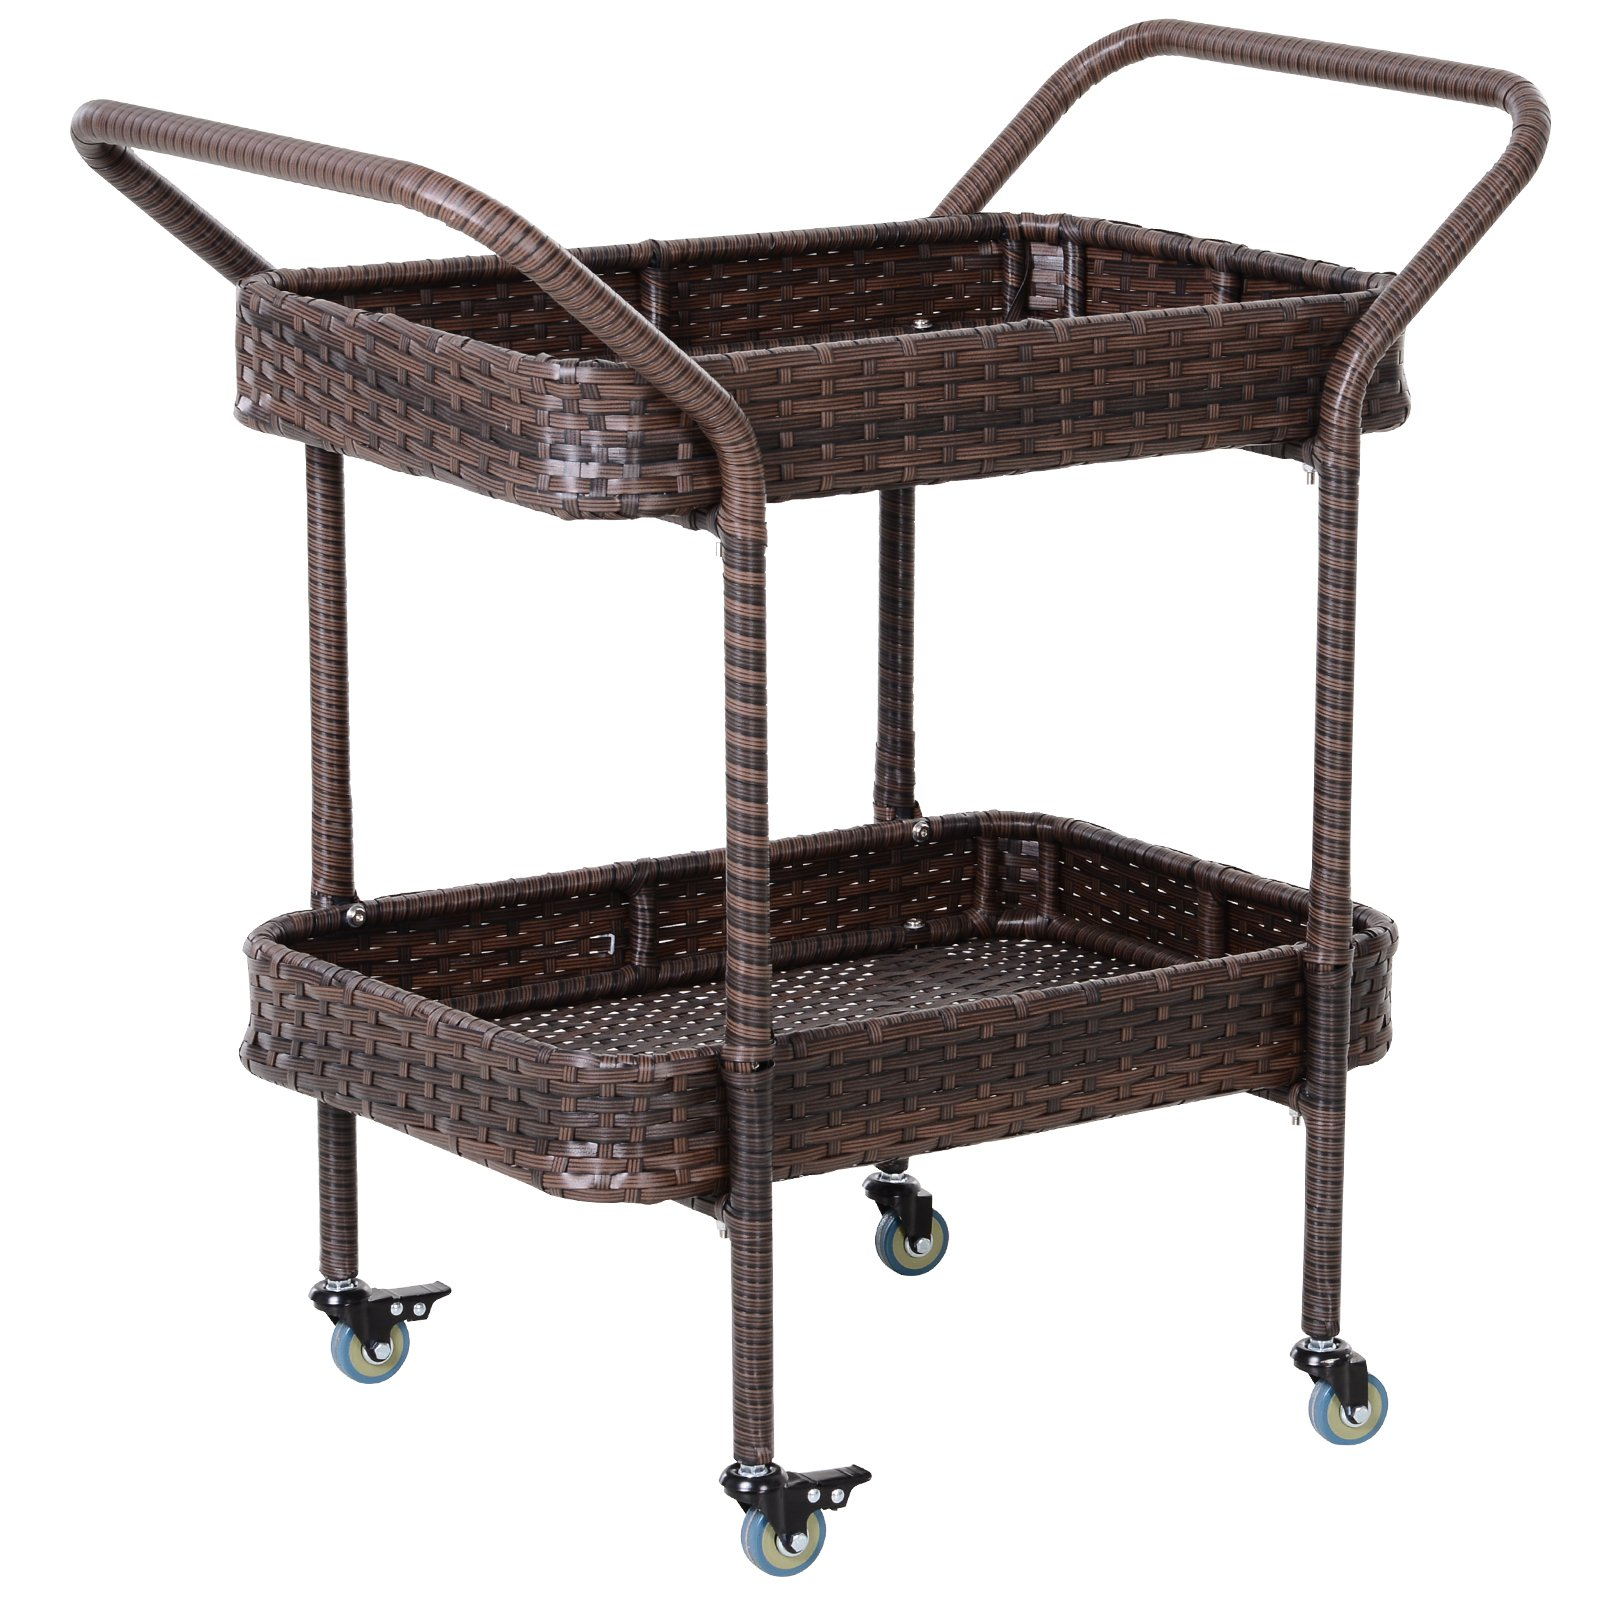 Outsunny Rolling Rattan Wicker Outdoor Kitchen Trolley Serving Cart 2 Tray Shelves Barbecues Aosom